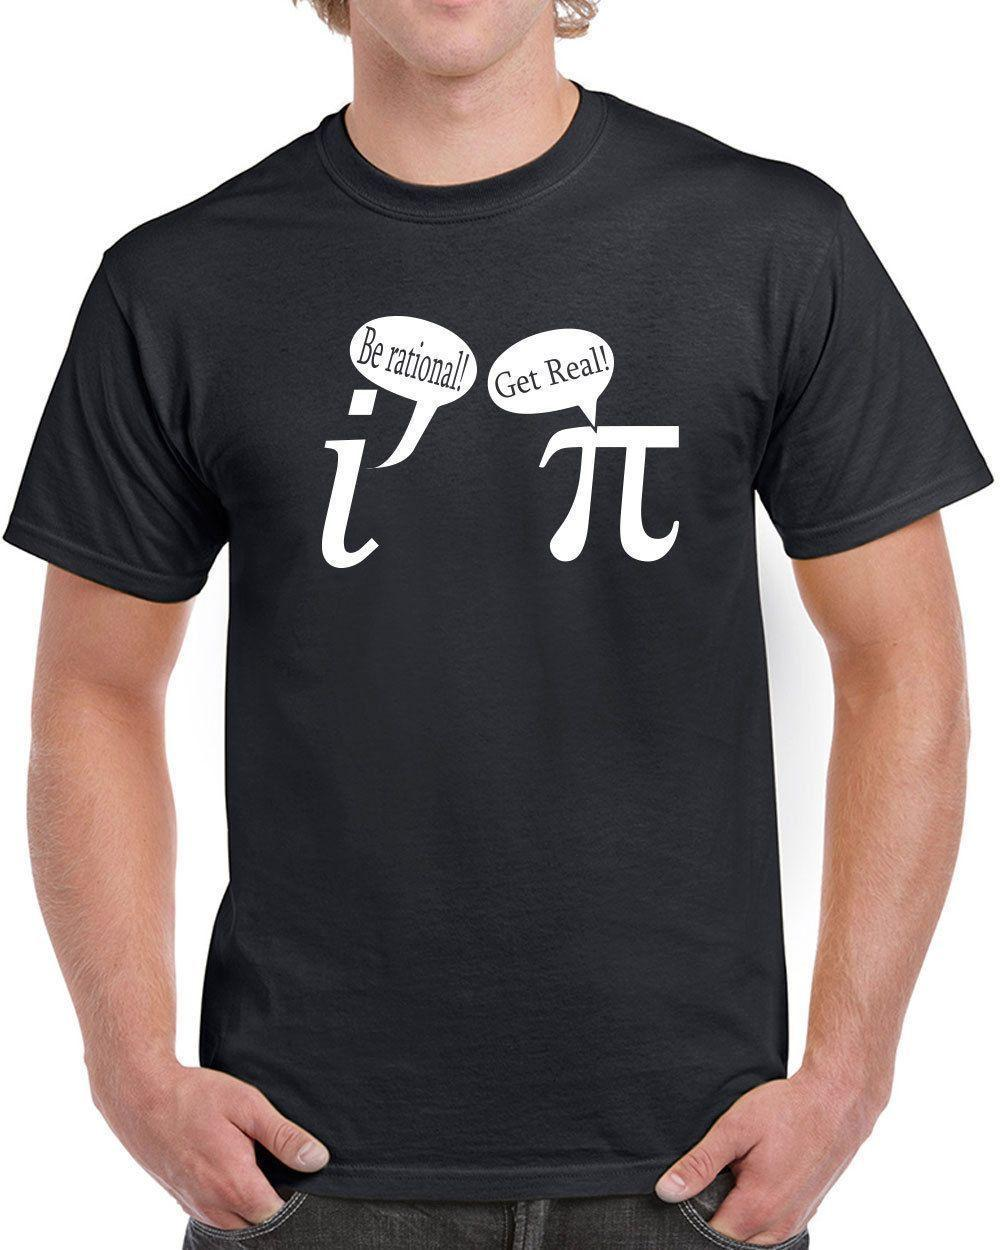 79b88fbd81b0 Be Rational Get Real Mens T Shirt Funny Math Geek NerdFunny Unisex Casual  Top With T Shirt T Shirts Shopping From Dragontee, $12.96  DHgate.Com